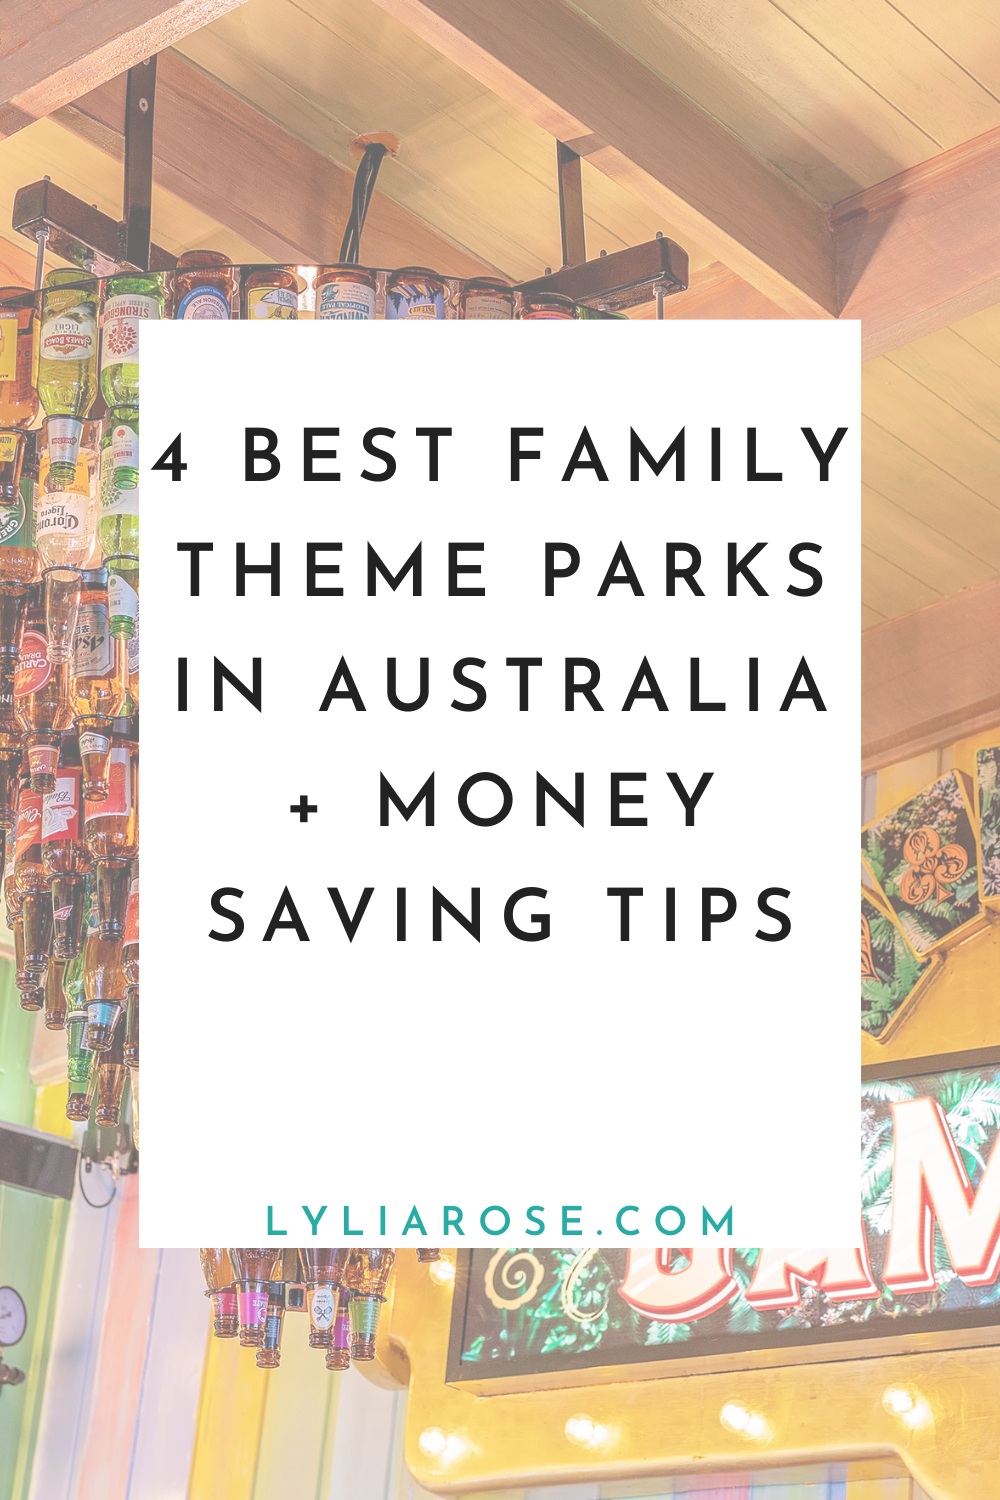 4 best family theme parks in Australia + money saving tips (7)